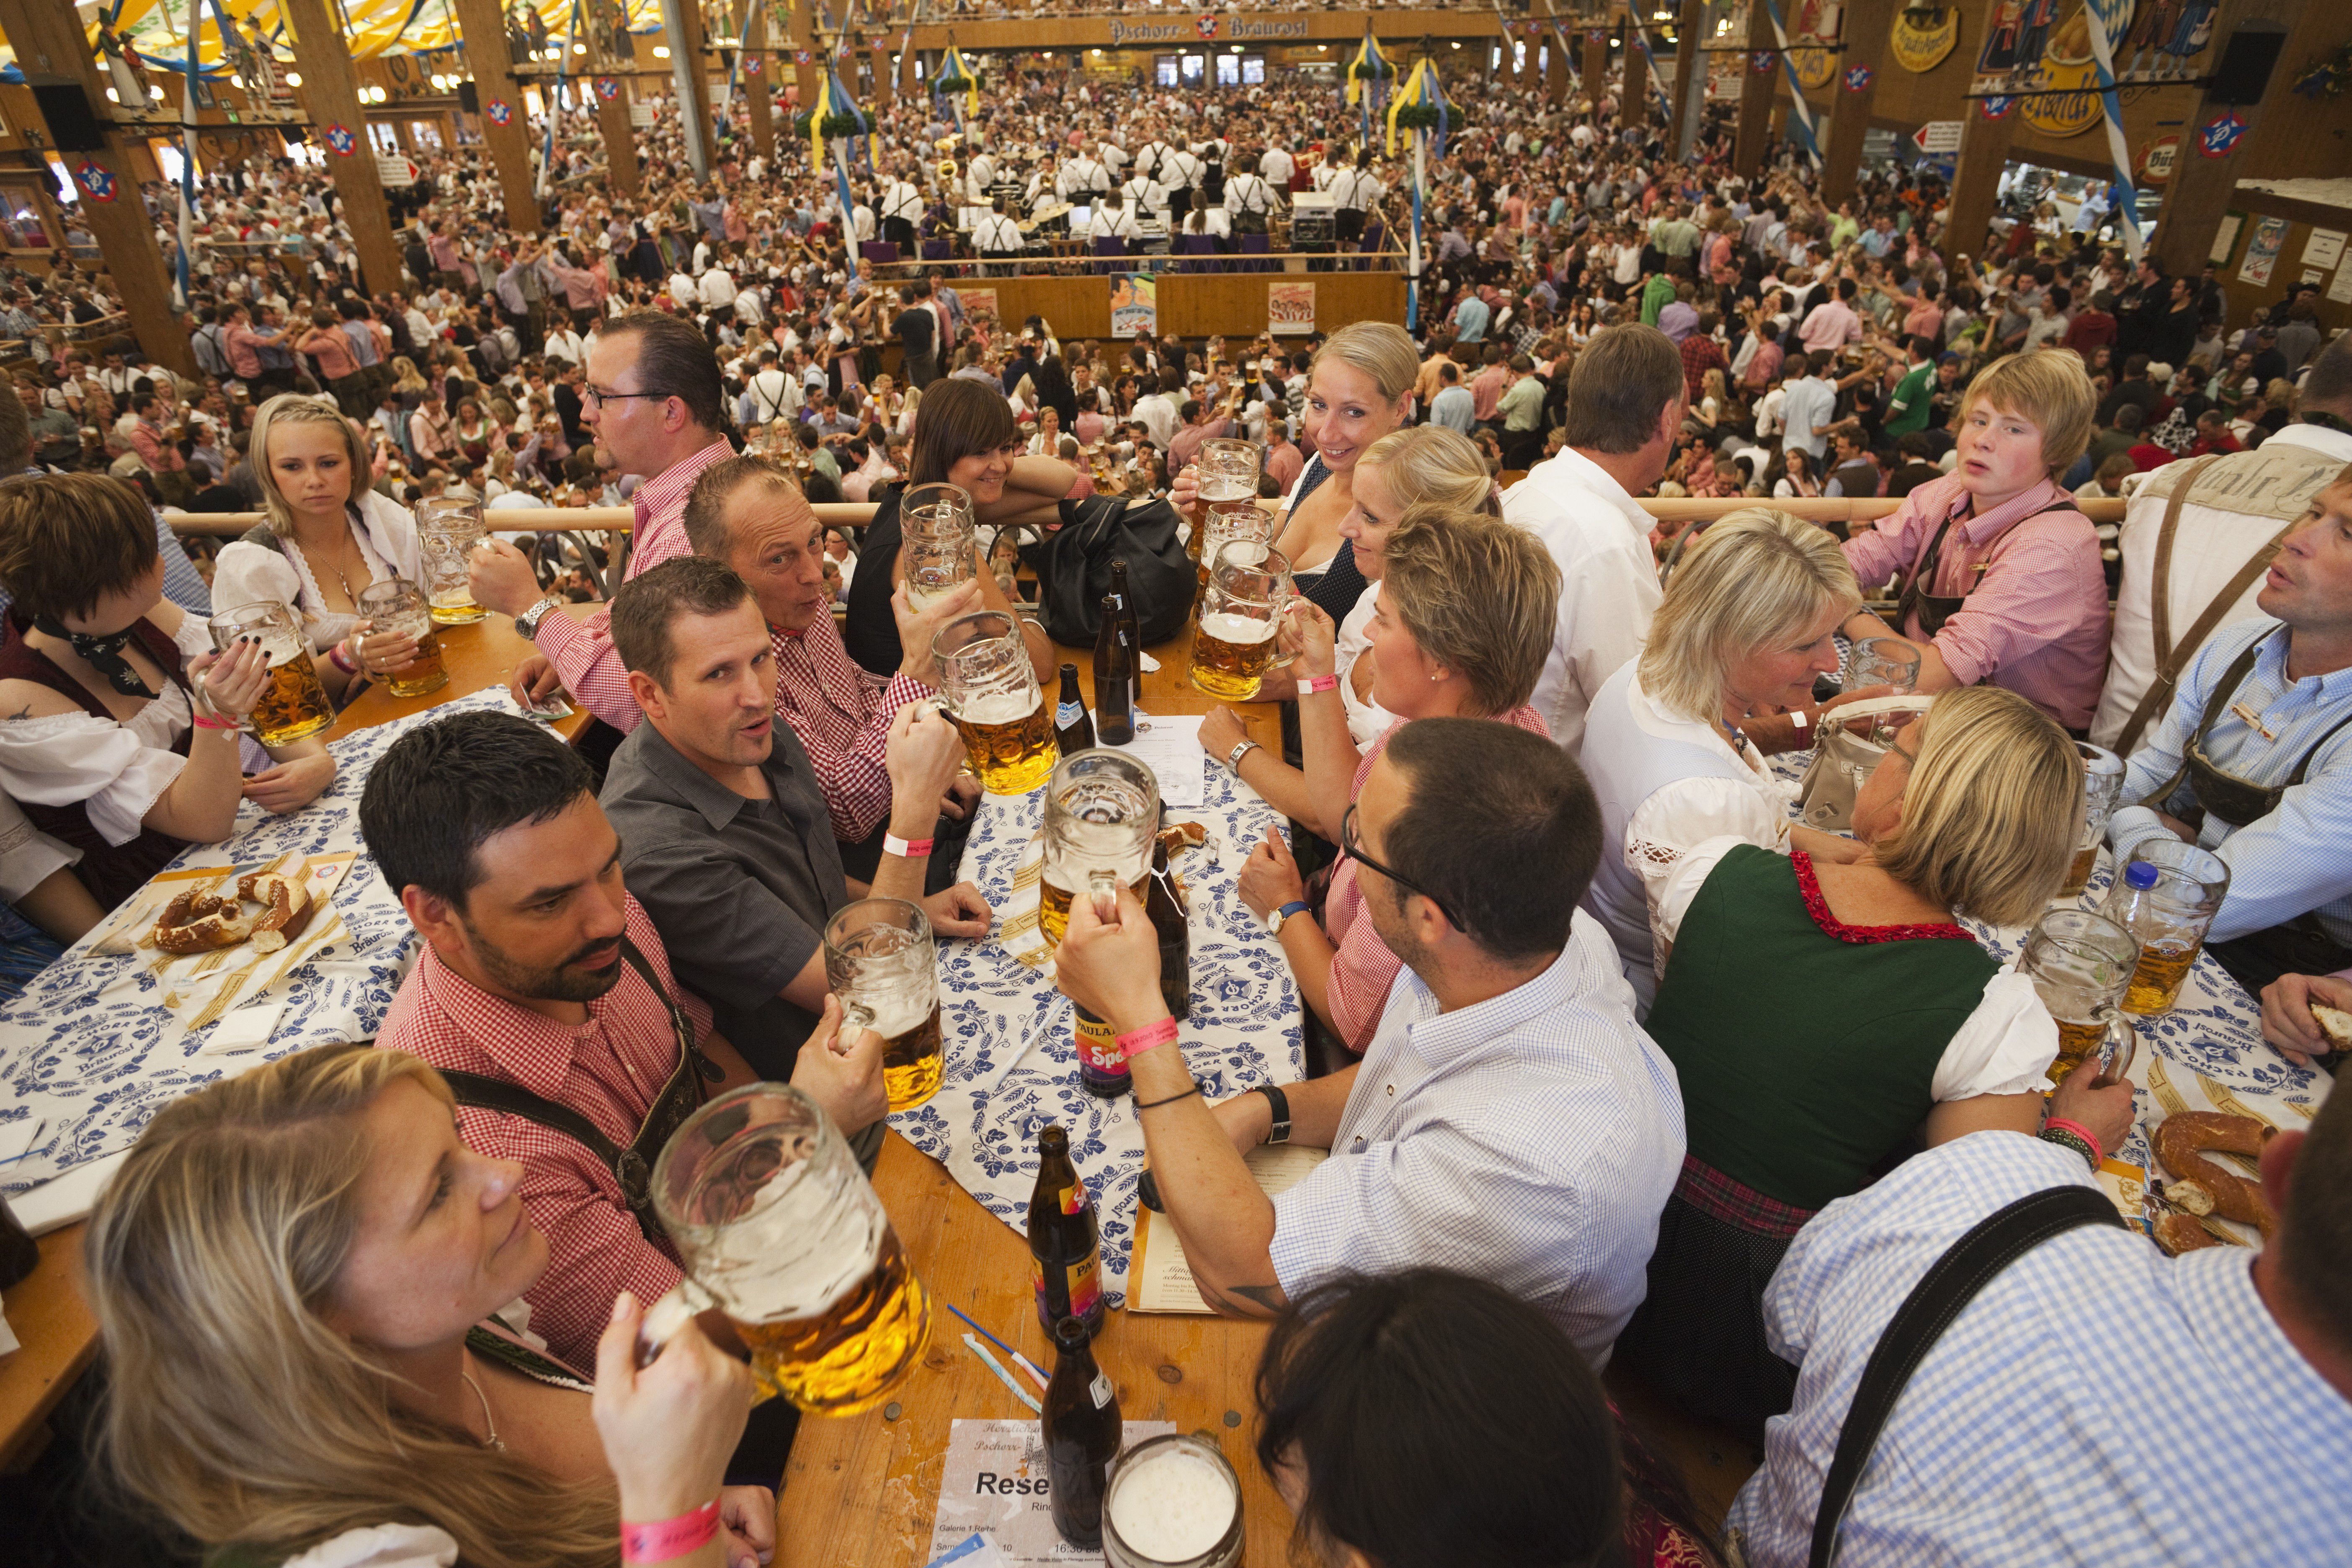 Make Your Own German Oktoberfest Food with These Recipes